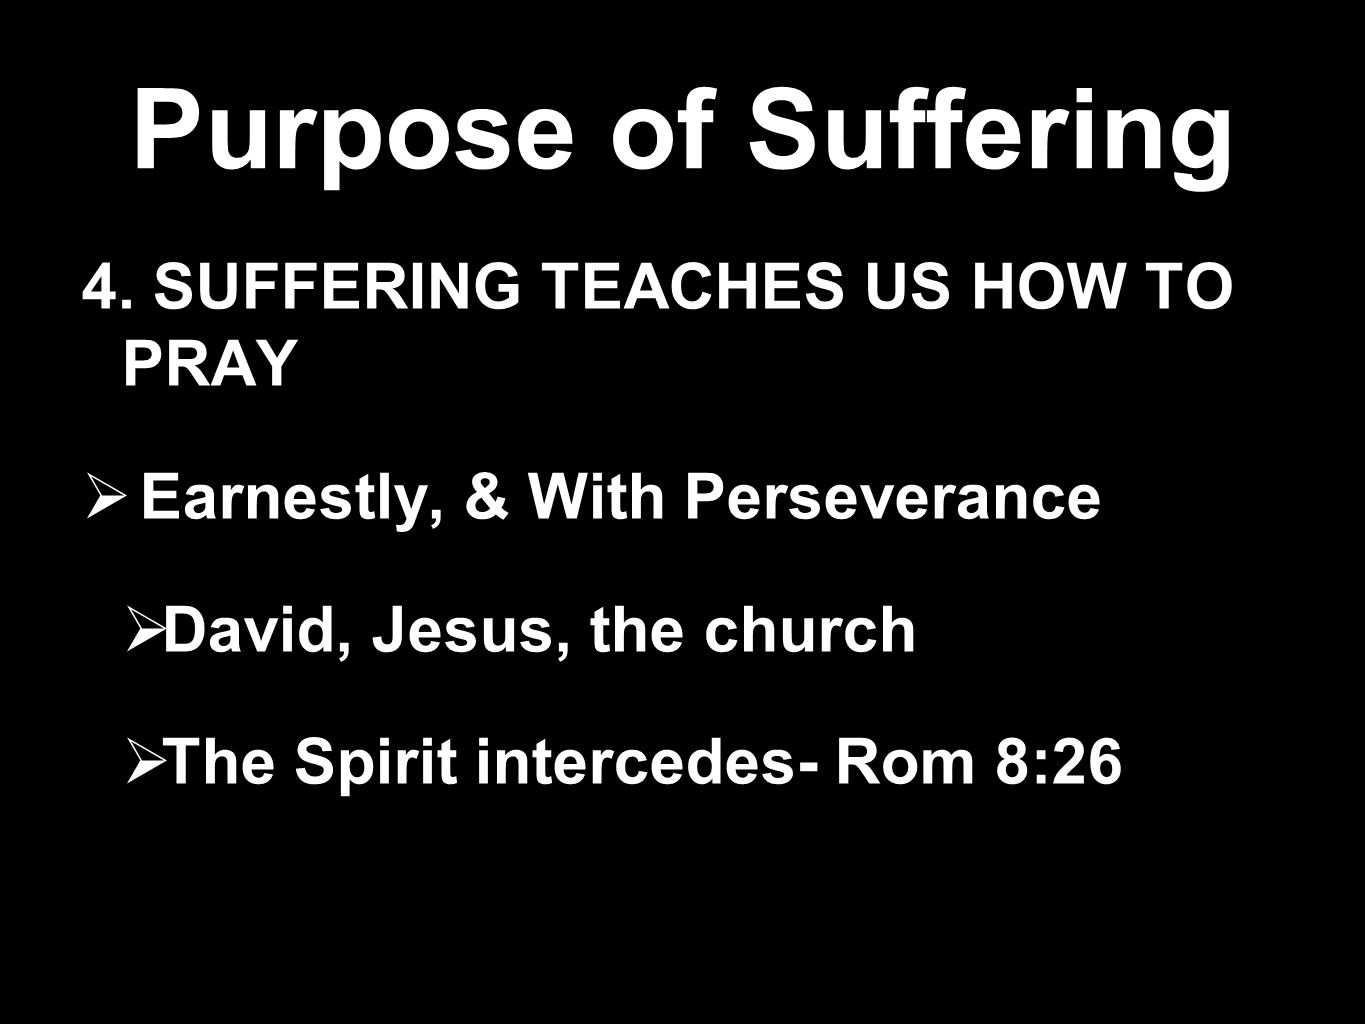 Purpose of Suffering 4. SUFFERING TEACHES US HOW TO PRAY